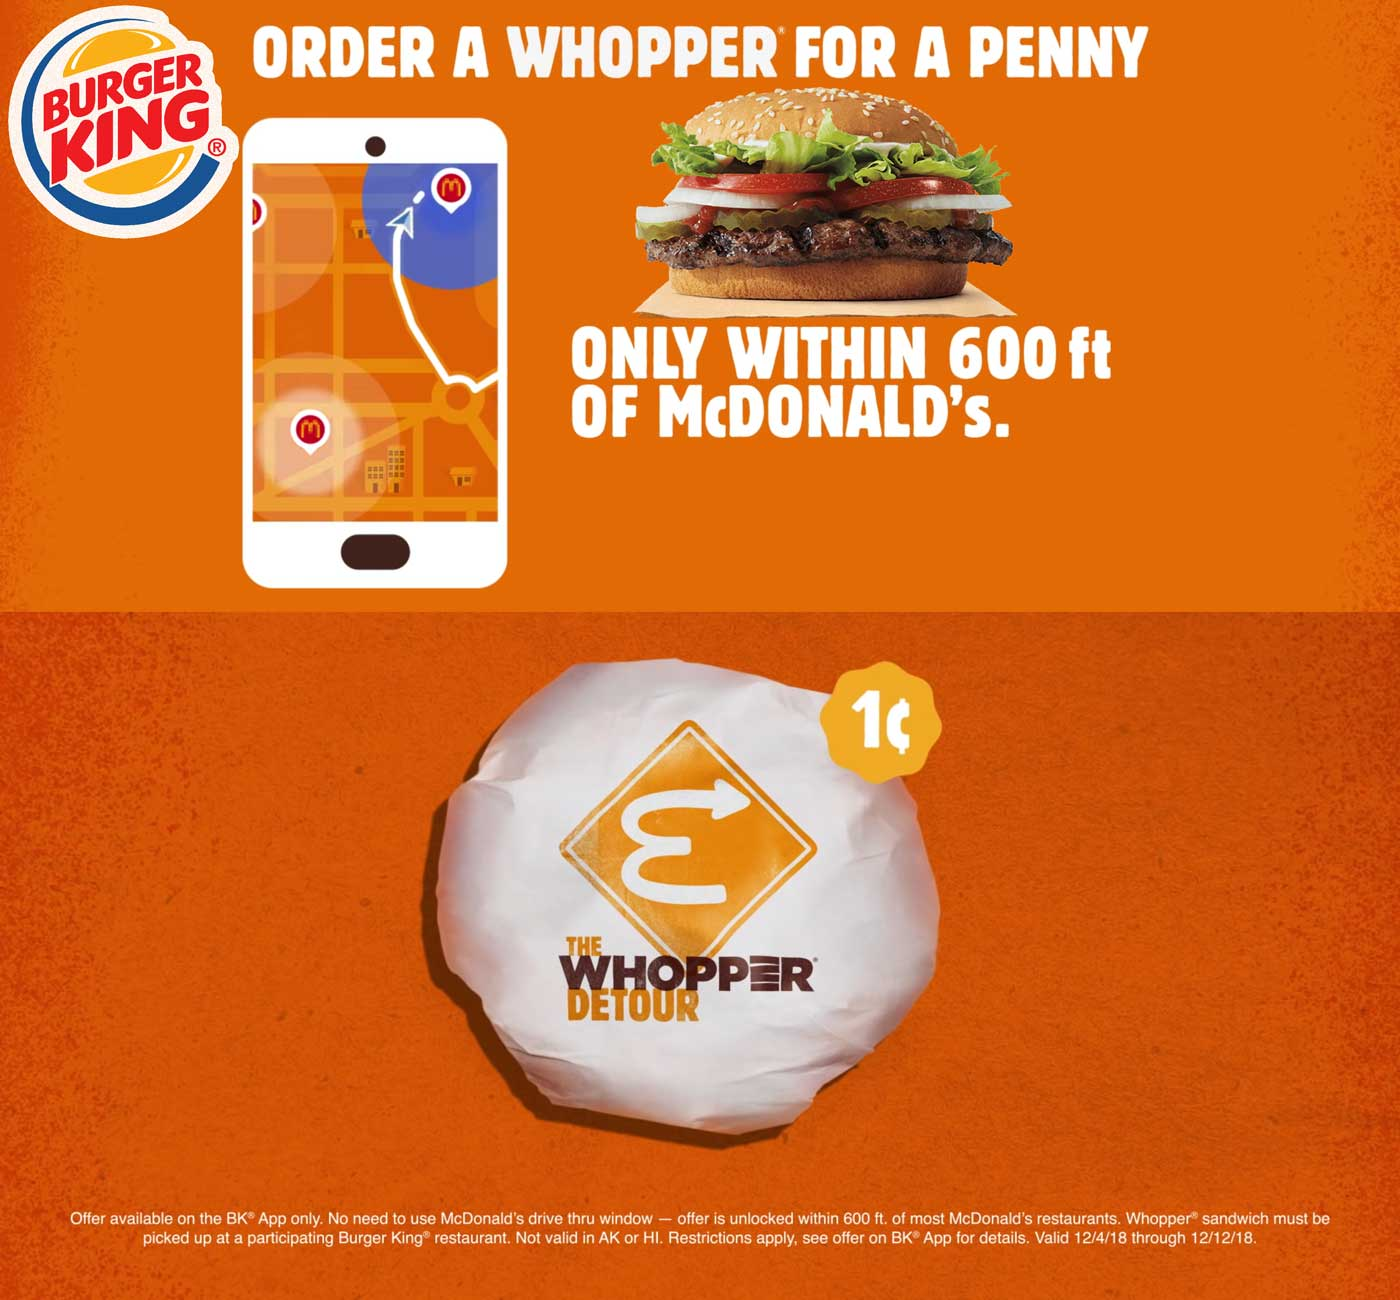 Burger King Coupons - Whopper for a penny via Burger King app